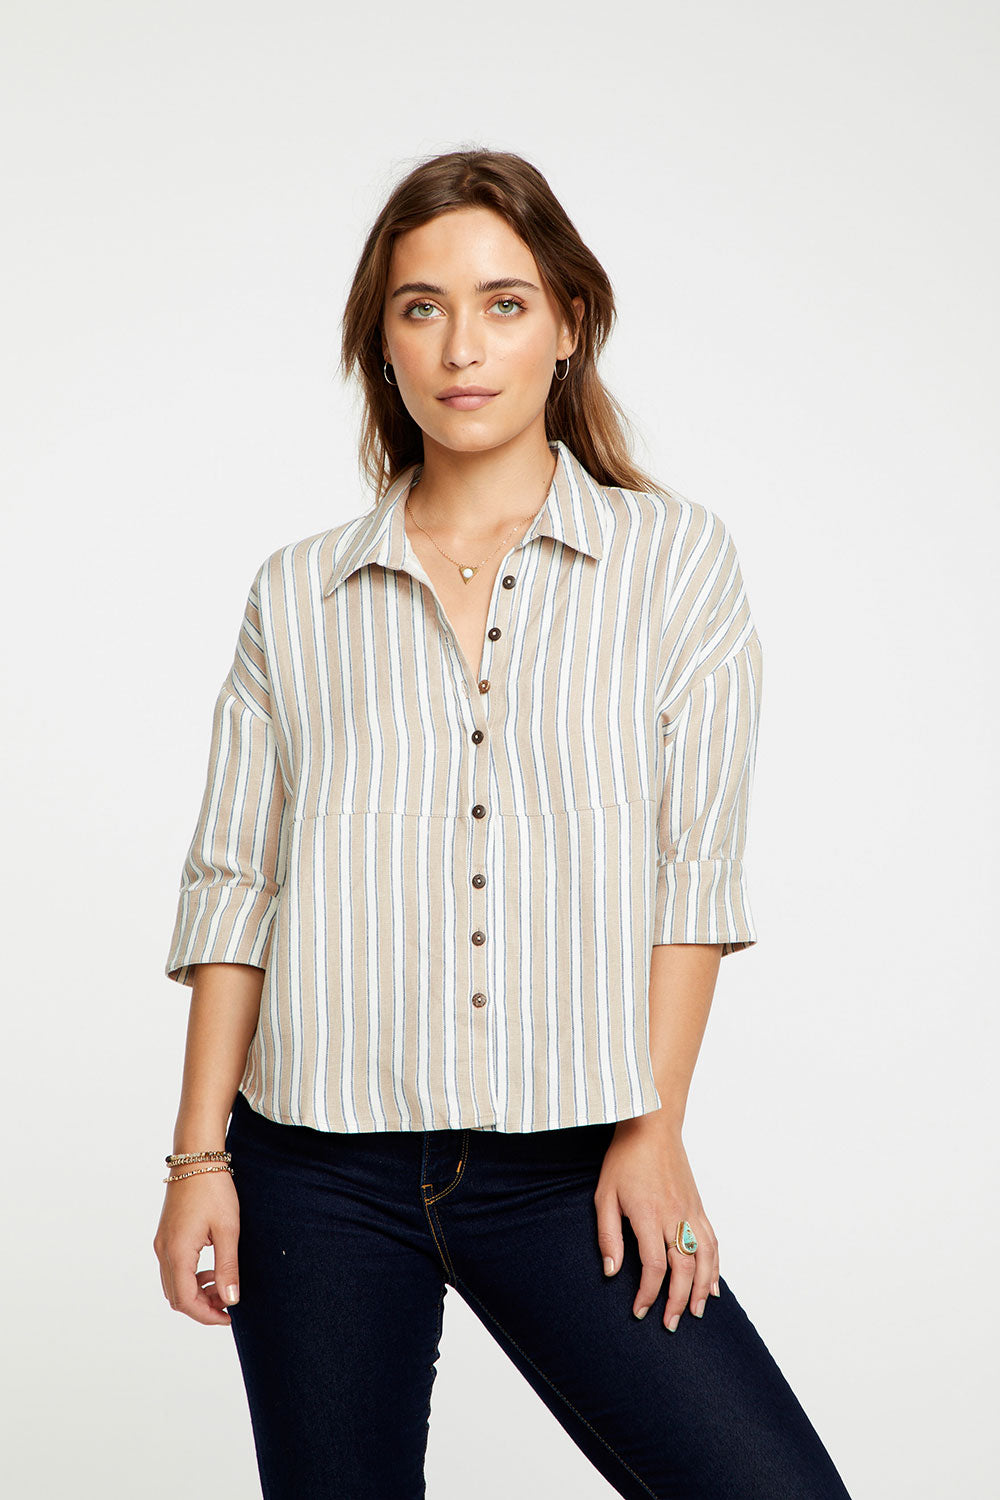 Linen 3/4 Roll Sleeve Seamed Shirttail Drop Shoulder Button WOMENS chaserbrand4.myshopify.com